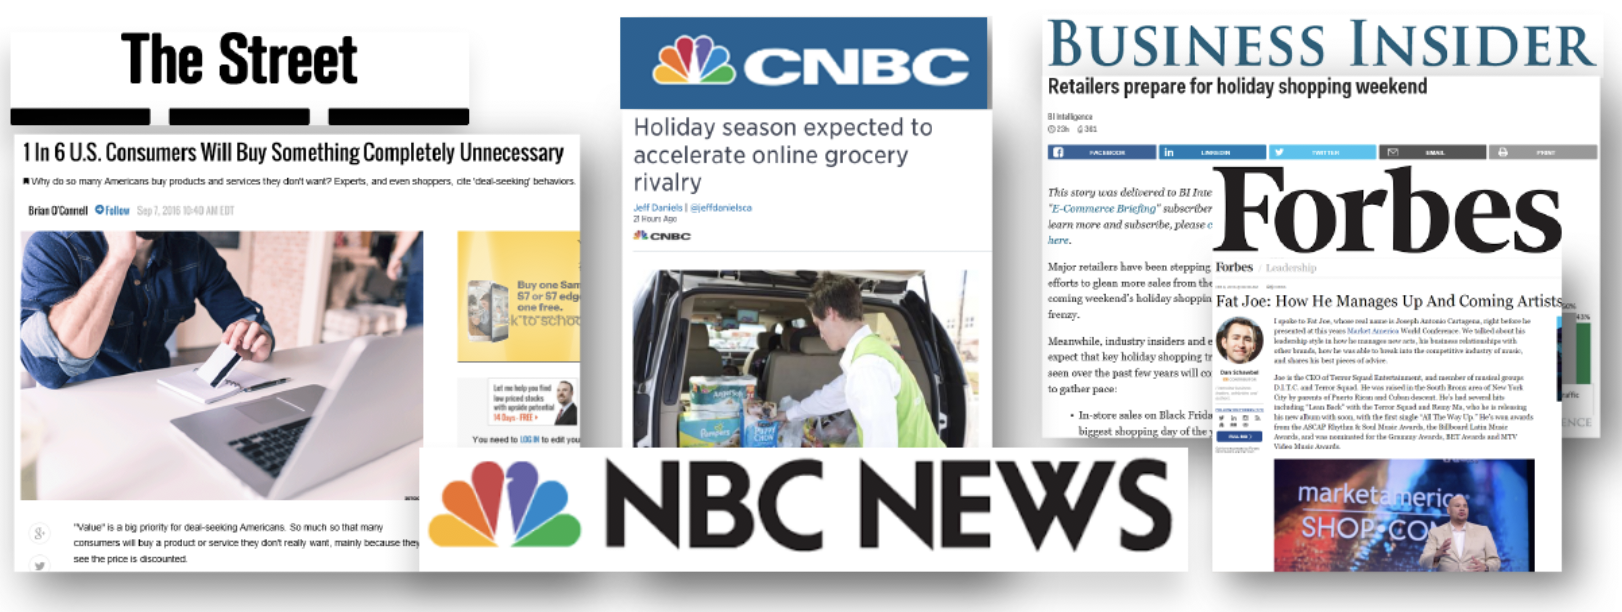 Media & Publication Placements for Market America by 5W PR